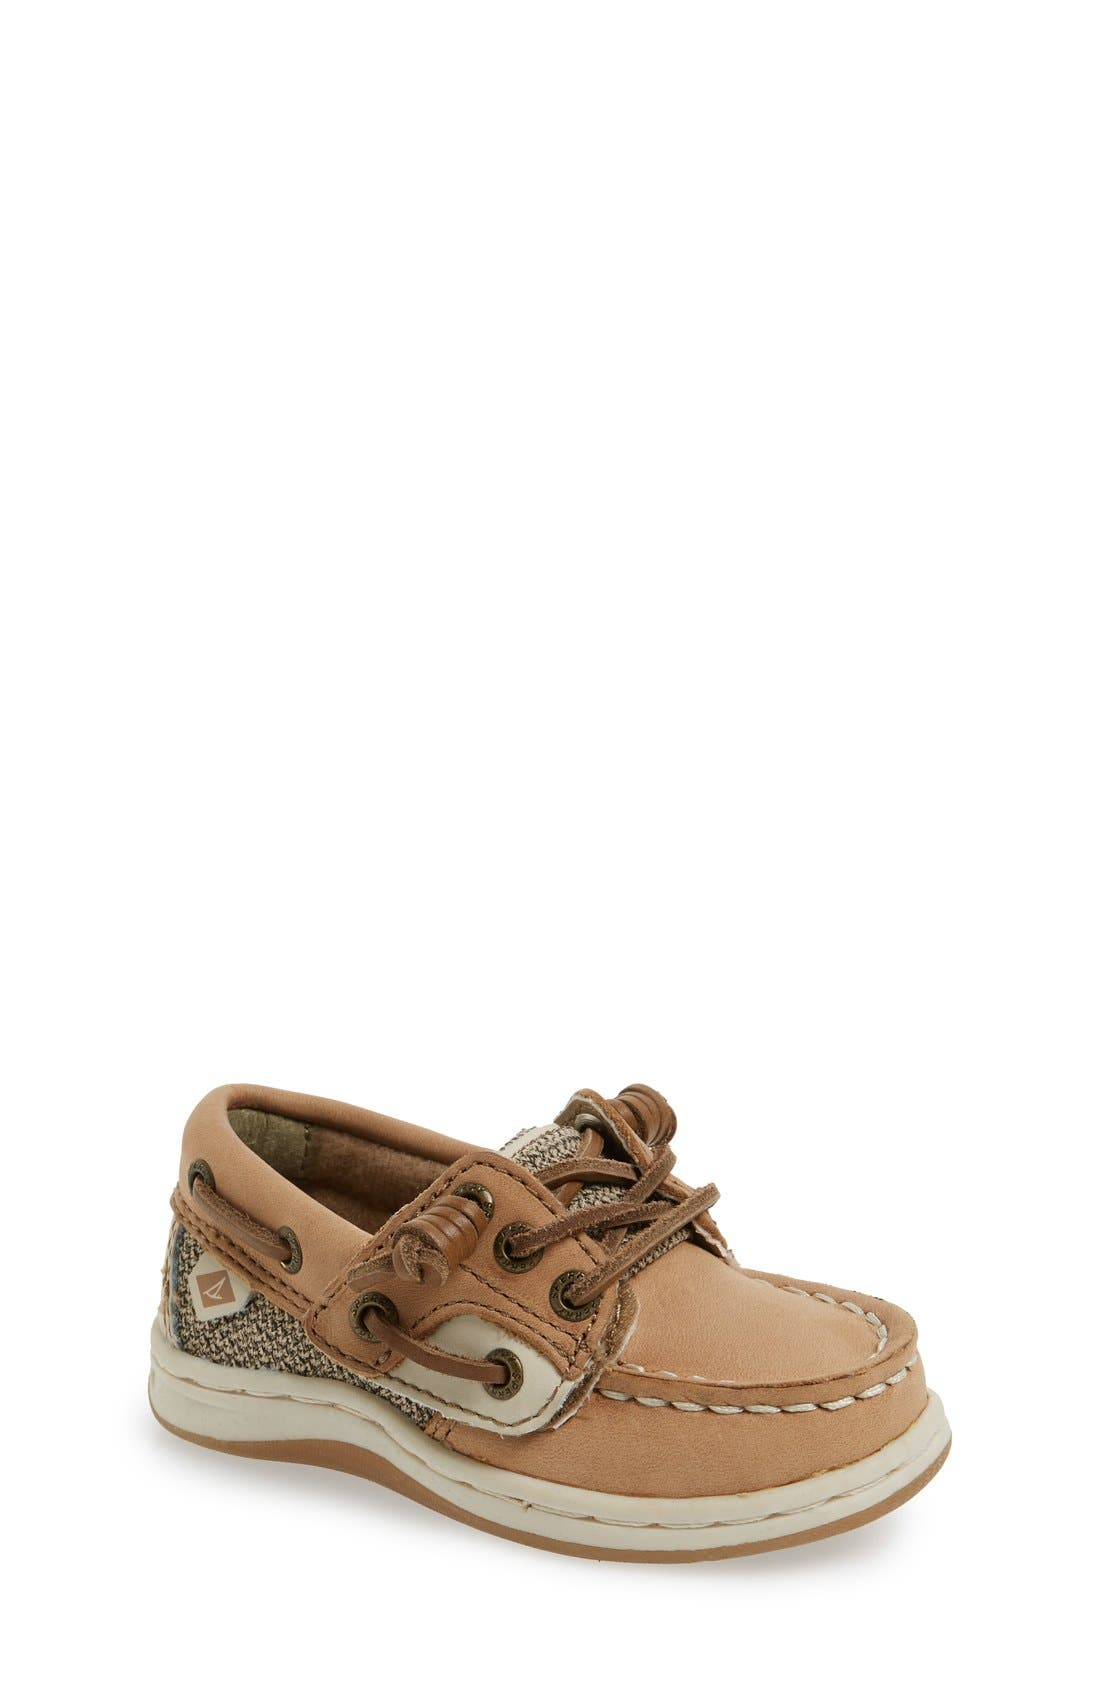 Sperry Kids 'Songfish' Boat Shoe (Walker & Toddler)